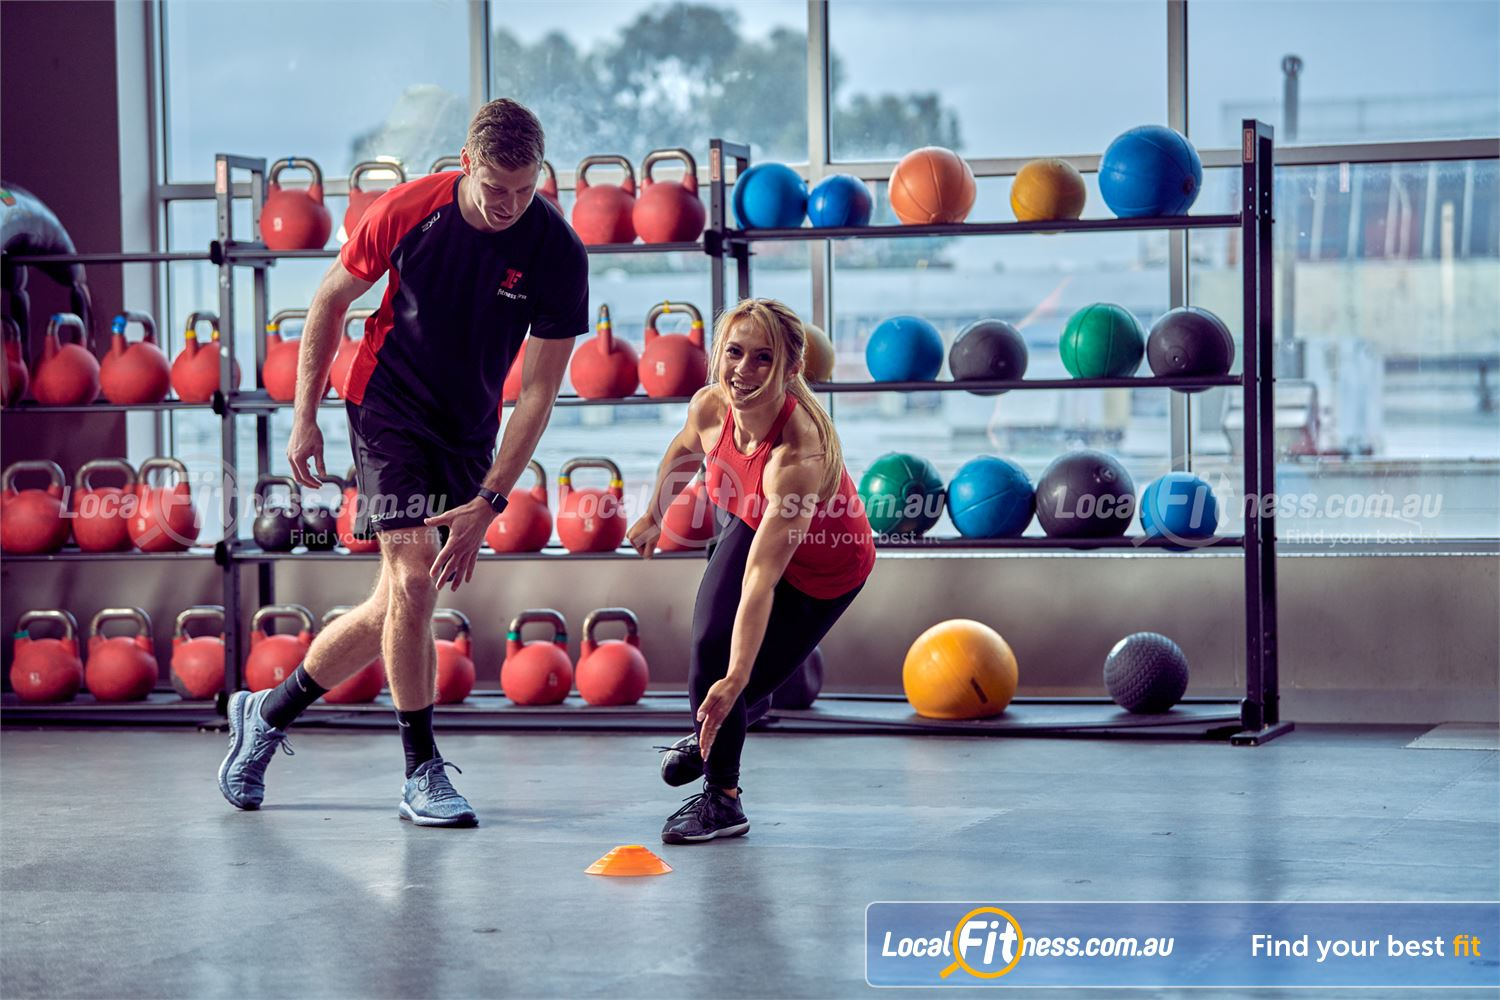 Fitness First Parramatta Get into freestyle training at Fitness First Parramatta gym.